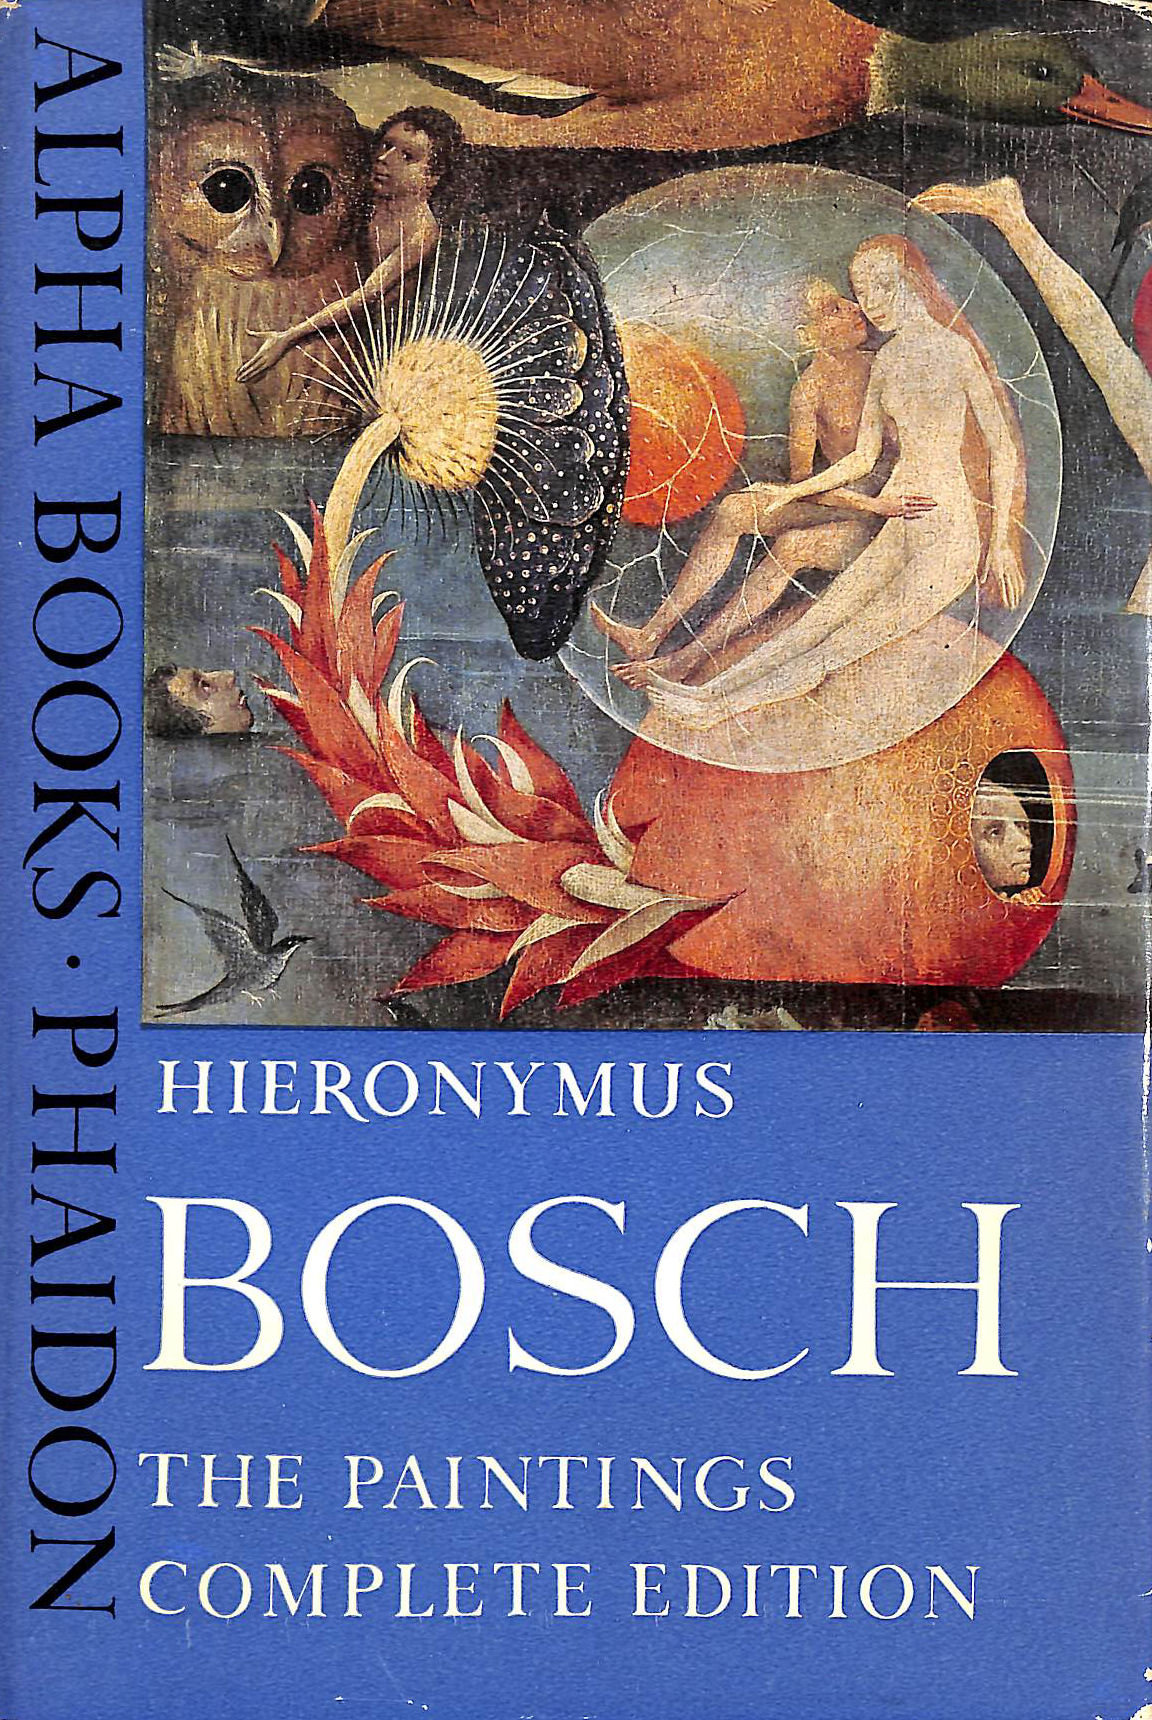 Image for Hieronymus Bosch. The Paintings.